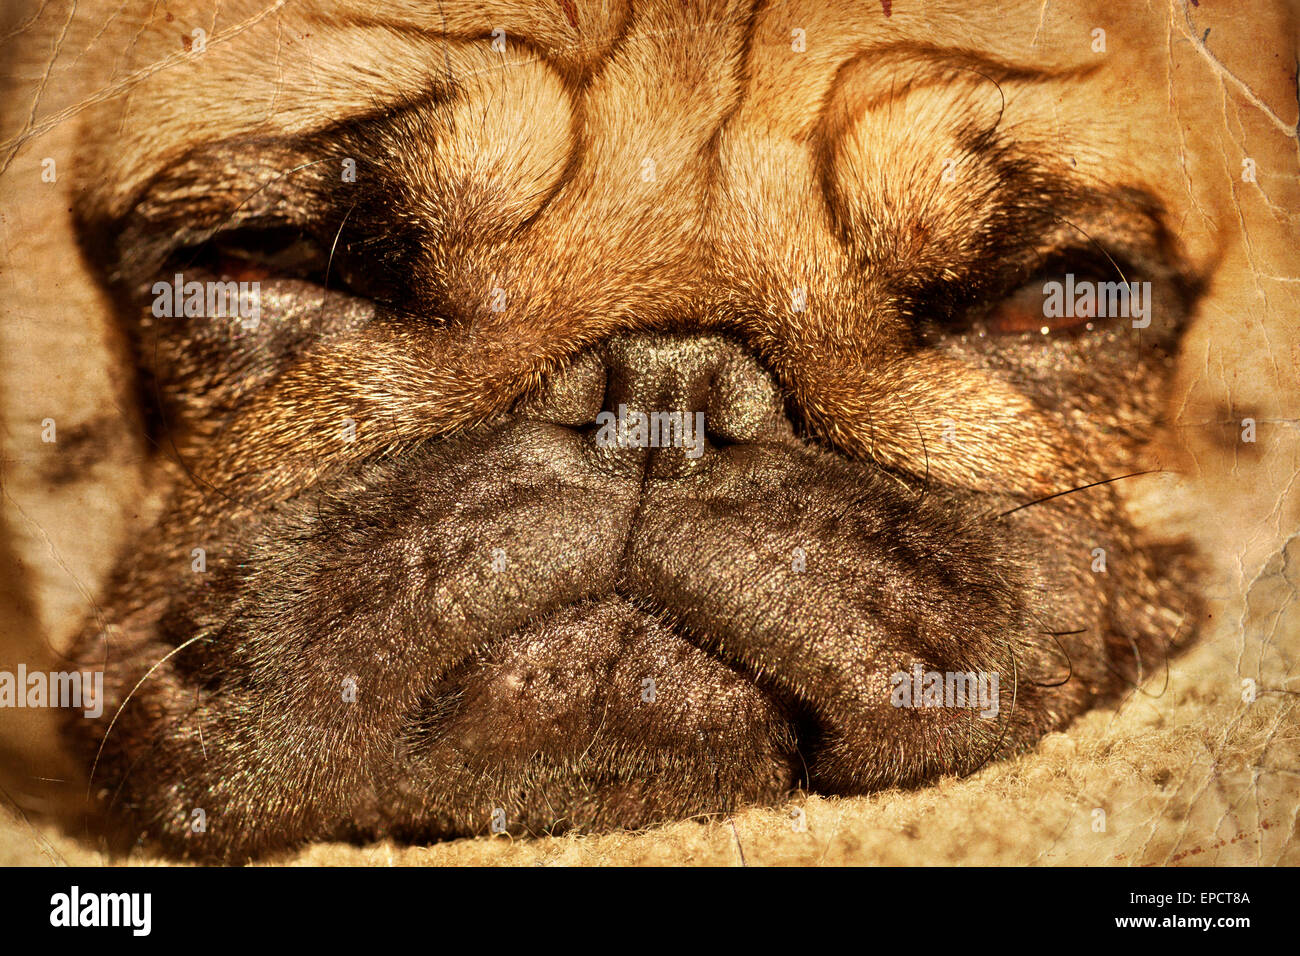 Close up of pug puppy sleeping in sunshine - Stock Image